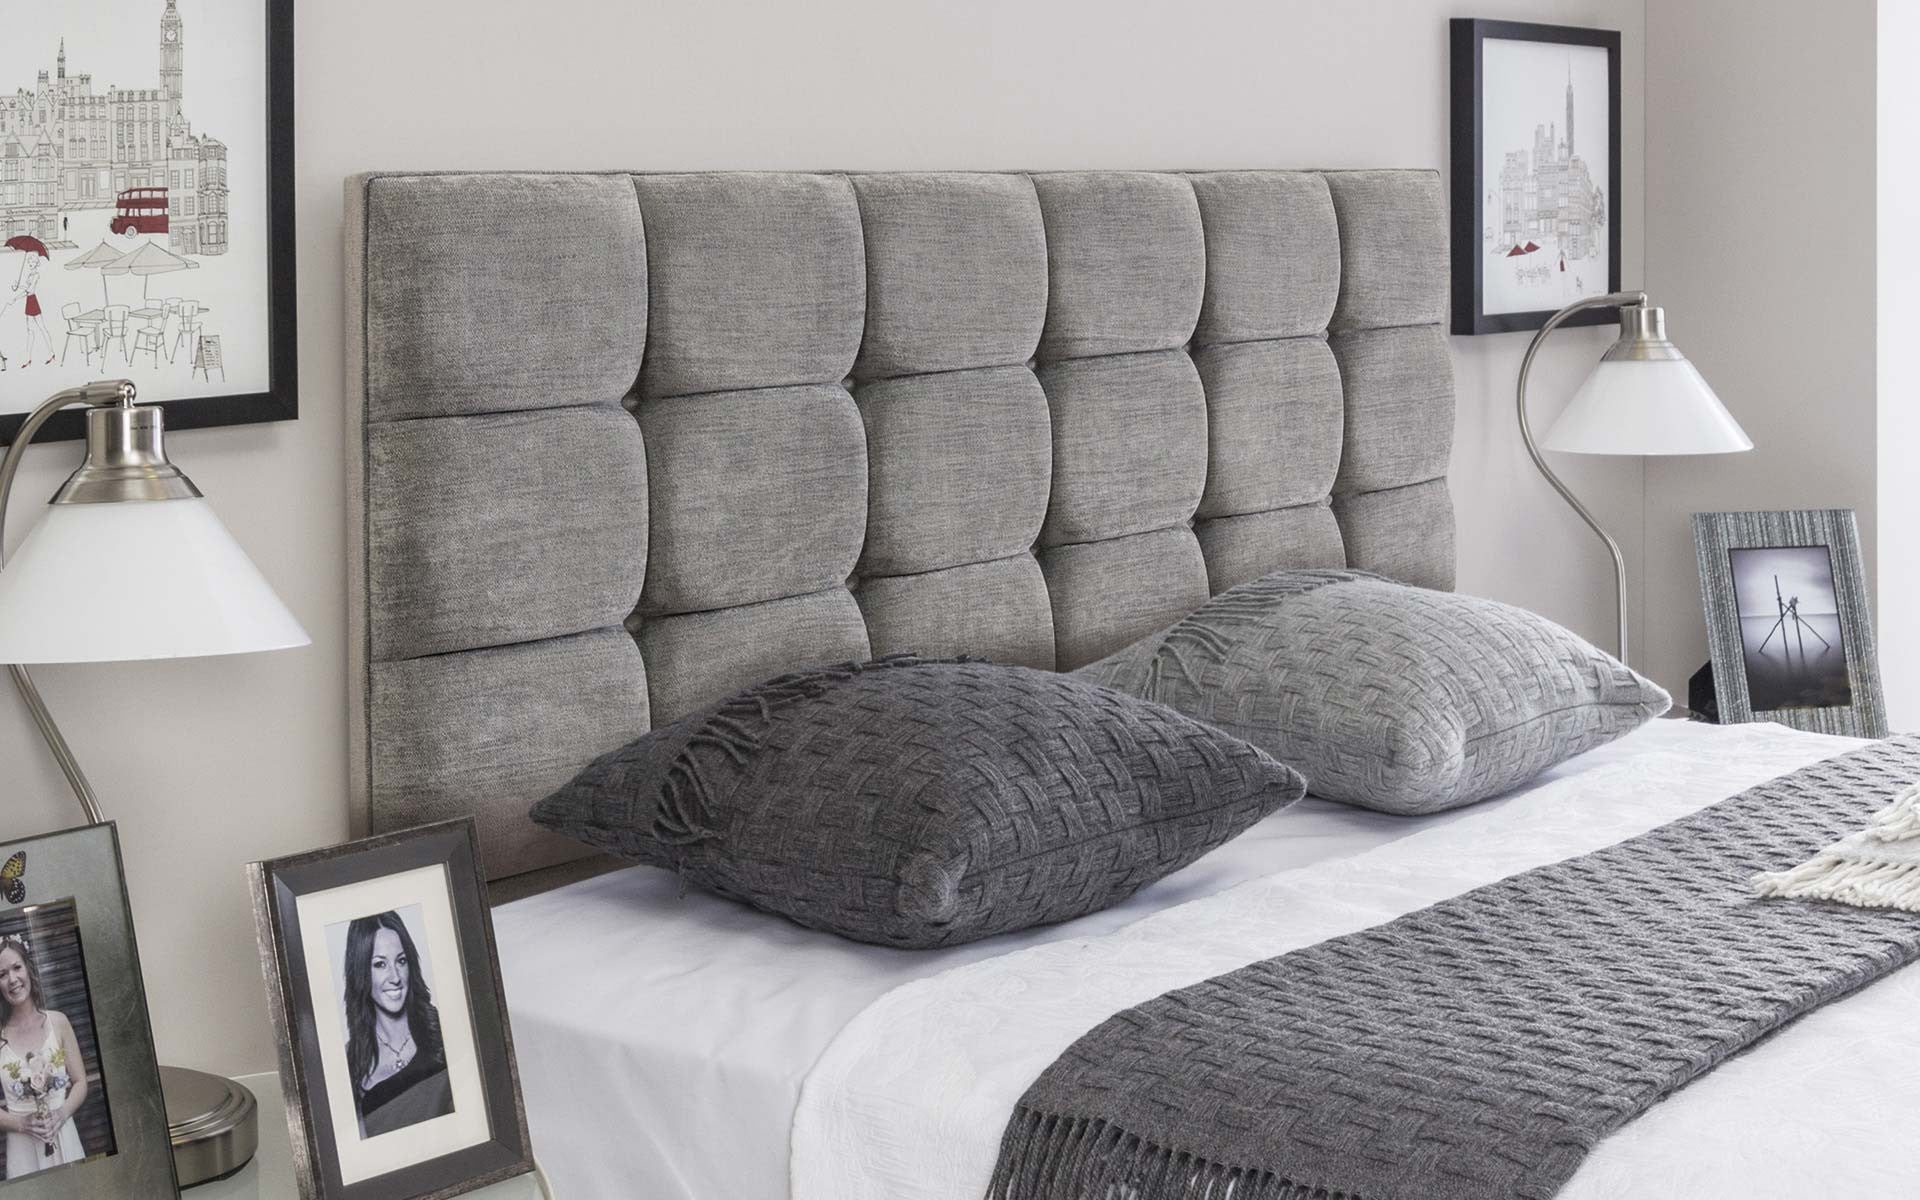 Roma upholstered headboard 4ft6 double in muse mist